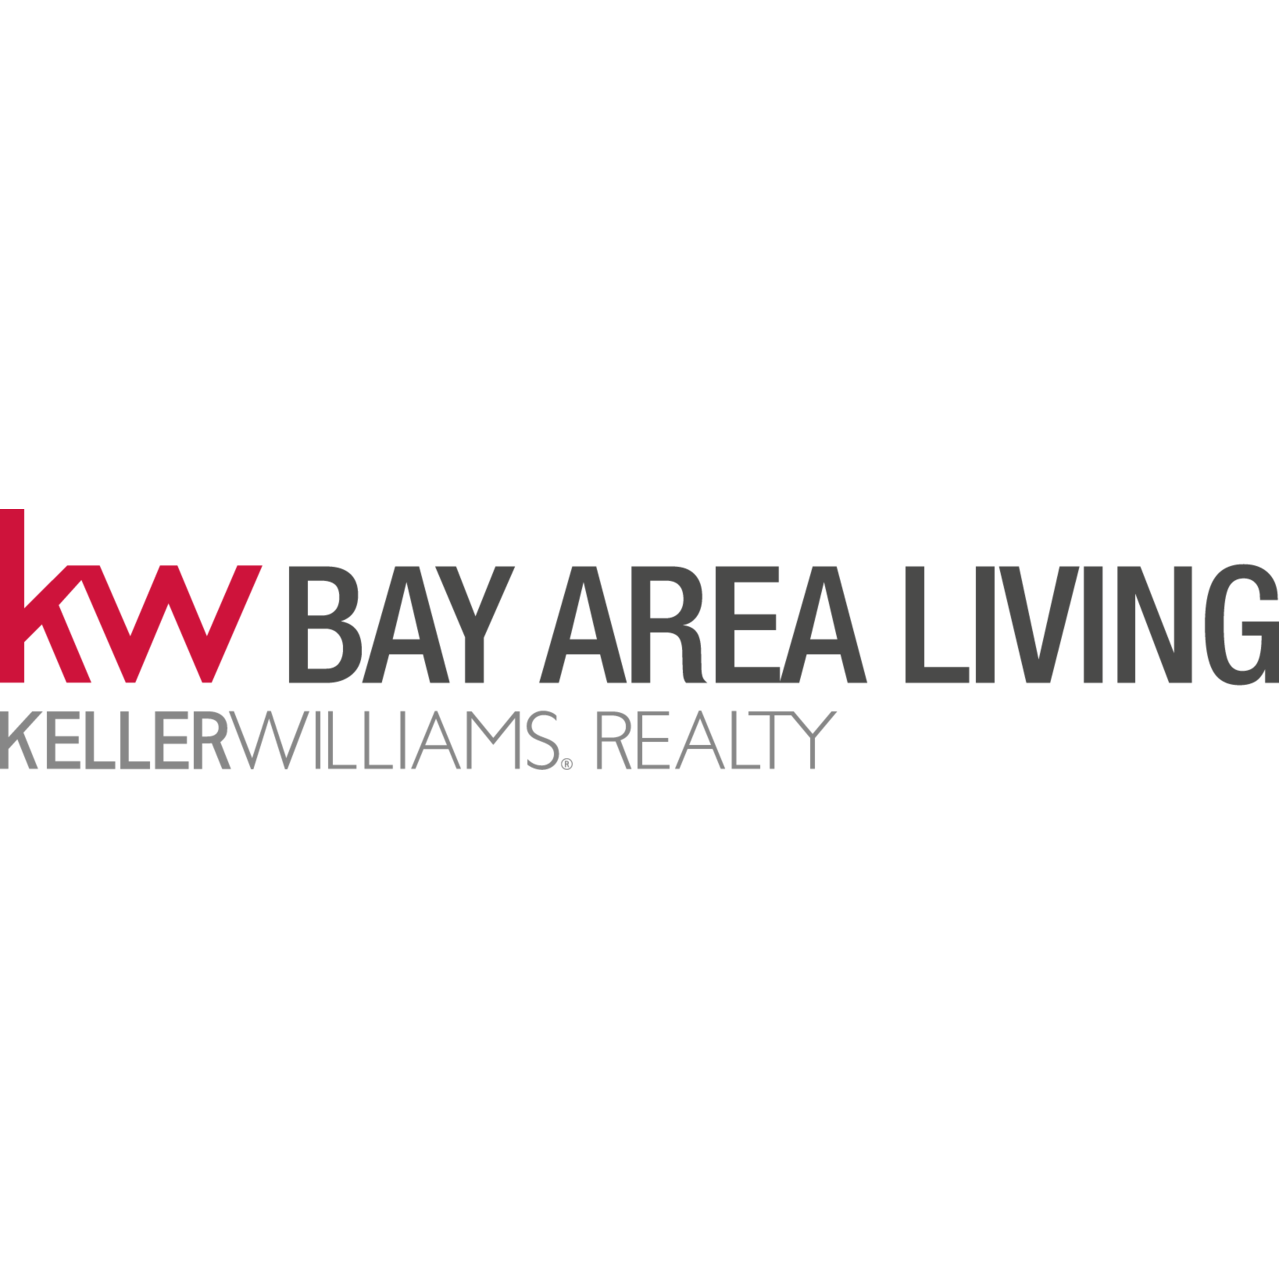 Pam Tyson, Keller Williams Bay Area Living